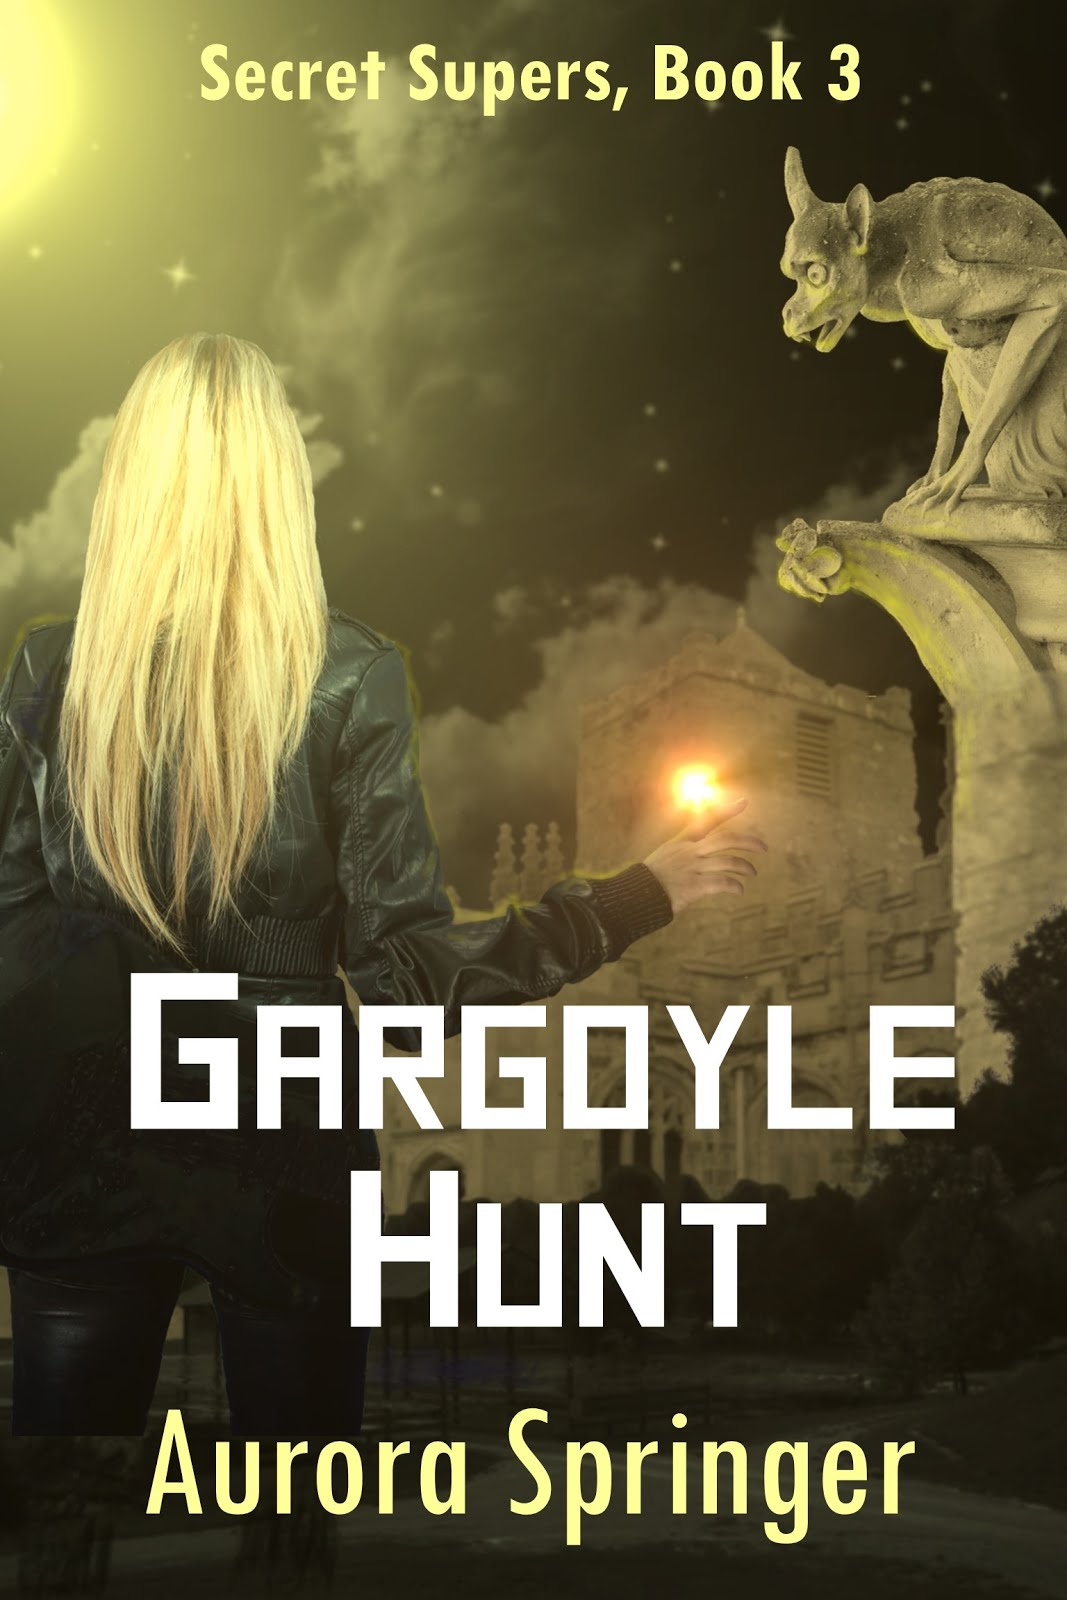 New Release - Gargoyle Hunt